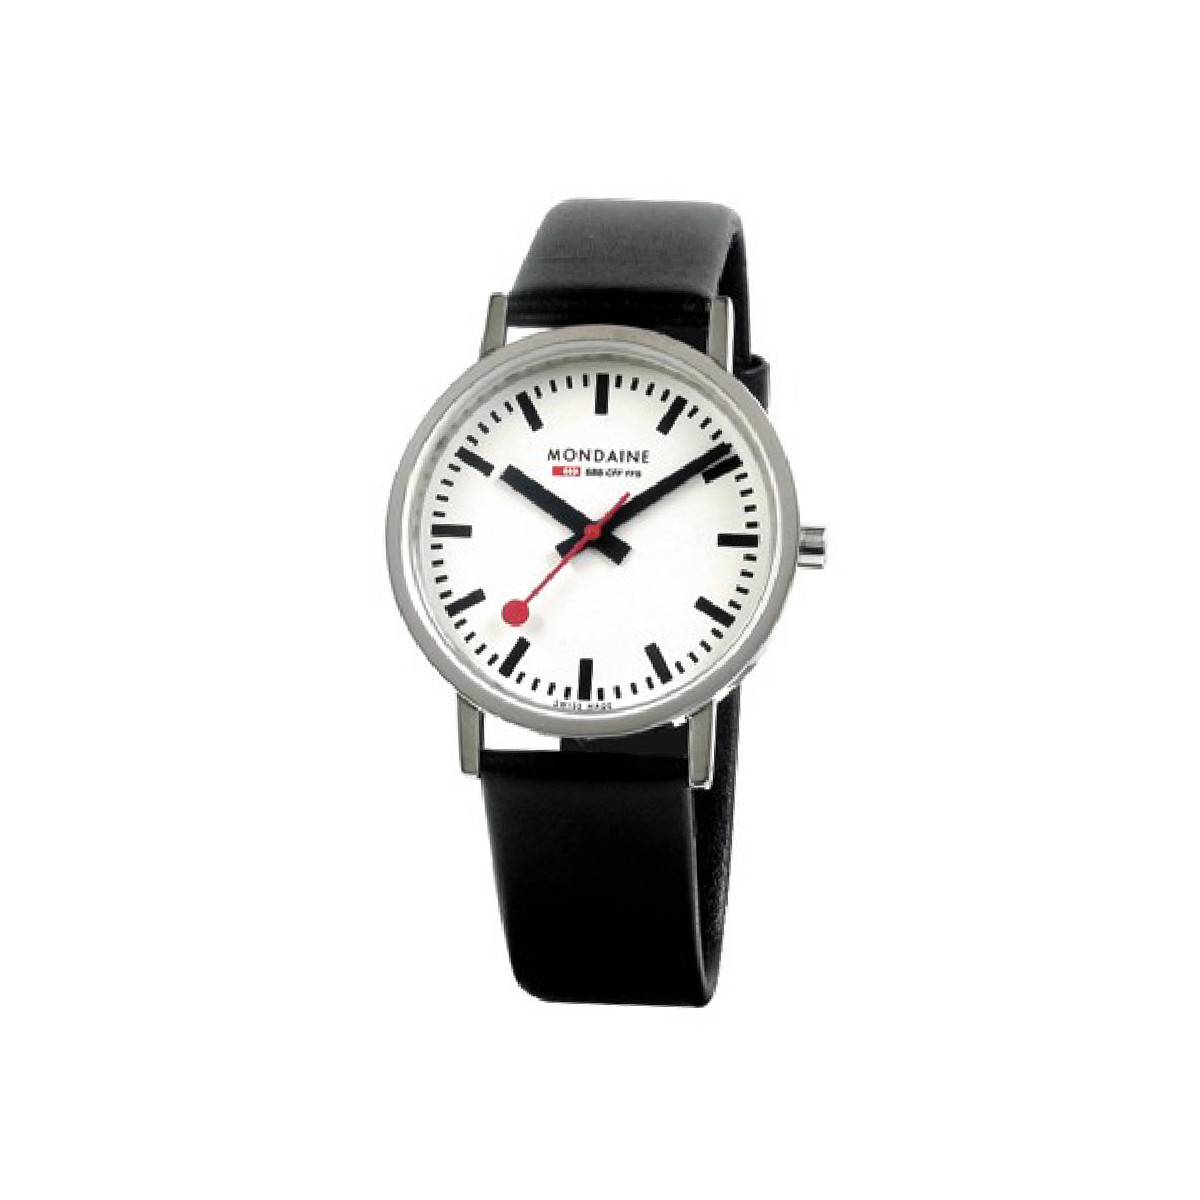 MONDAINE CLASSIC WATCH 36 MM